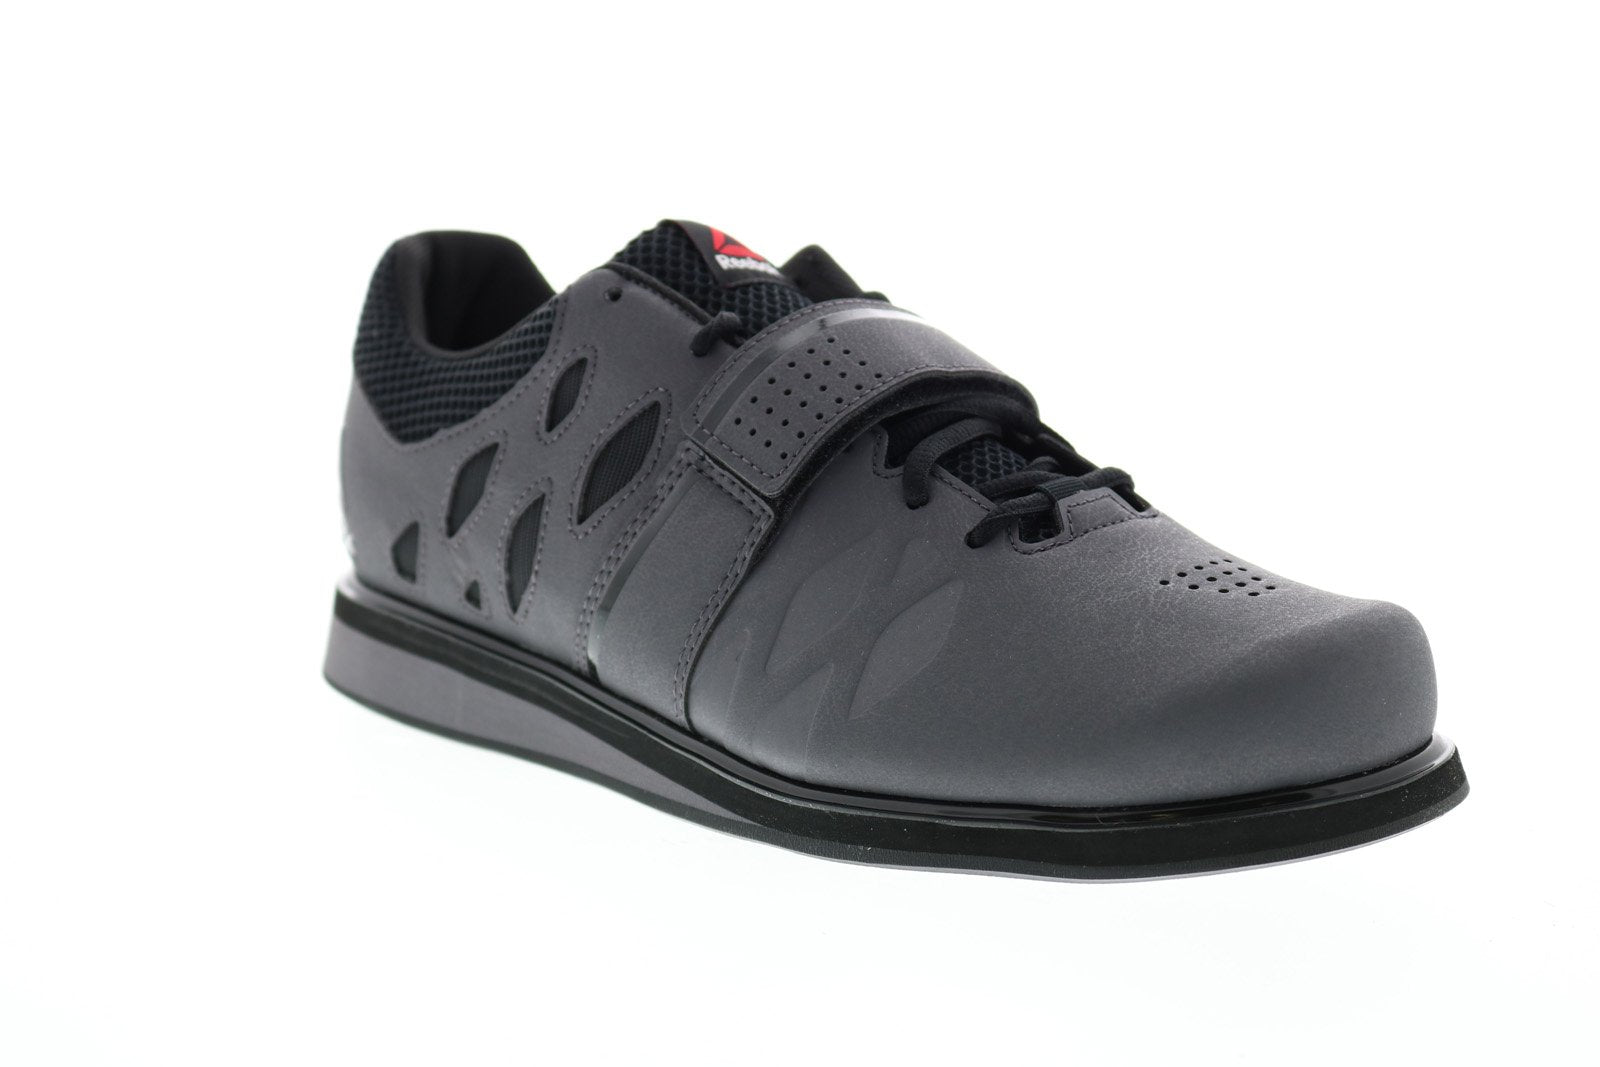 Reebok Lifter PR BD2631 Mens Gray Lace Up Athletic Weightlifting Shoes